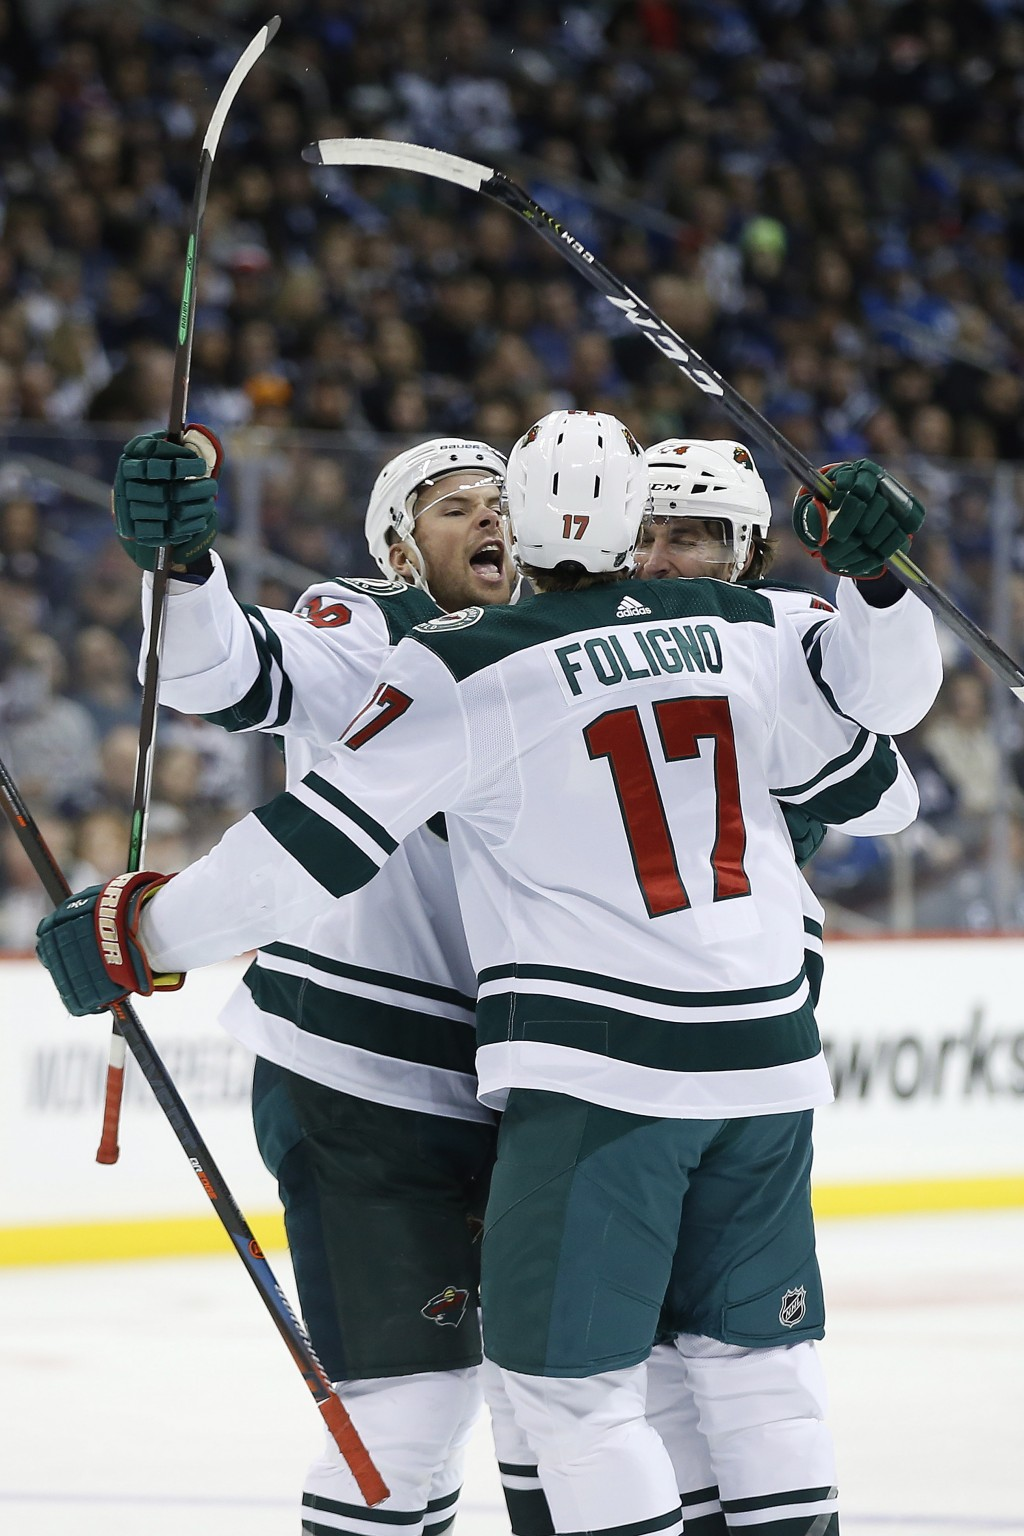 Minnesota Wild's Nate Prosser (39), Marcus Foligno (17) and Matt Bartkowski (44) celebrate Bartkowski's goal against the Winnipeg Jets during first pe...